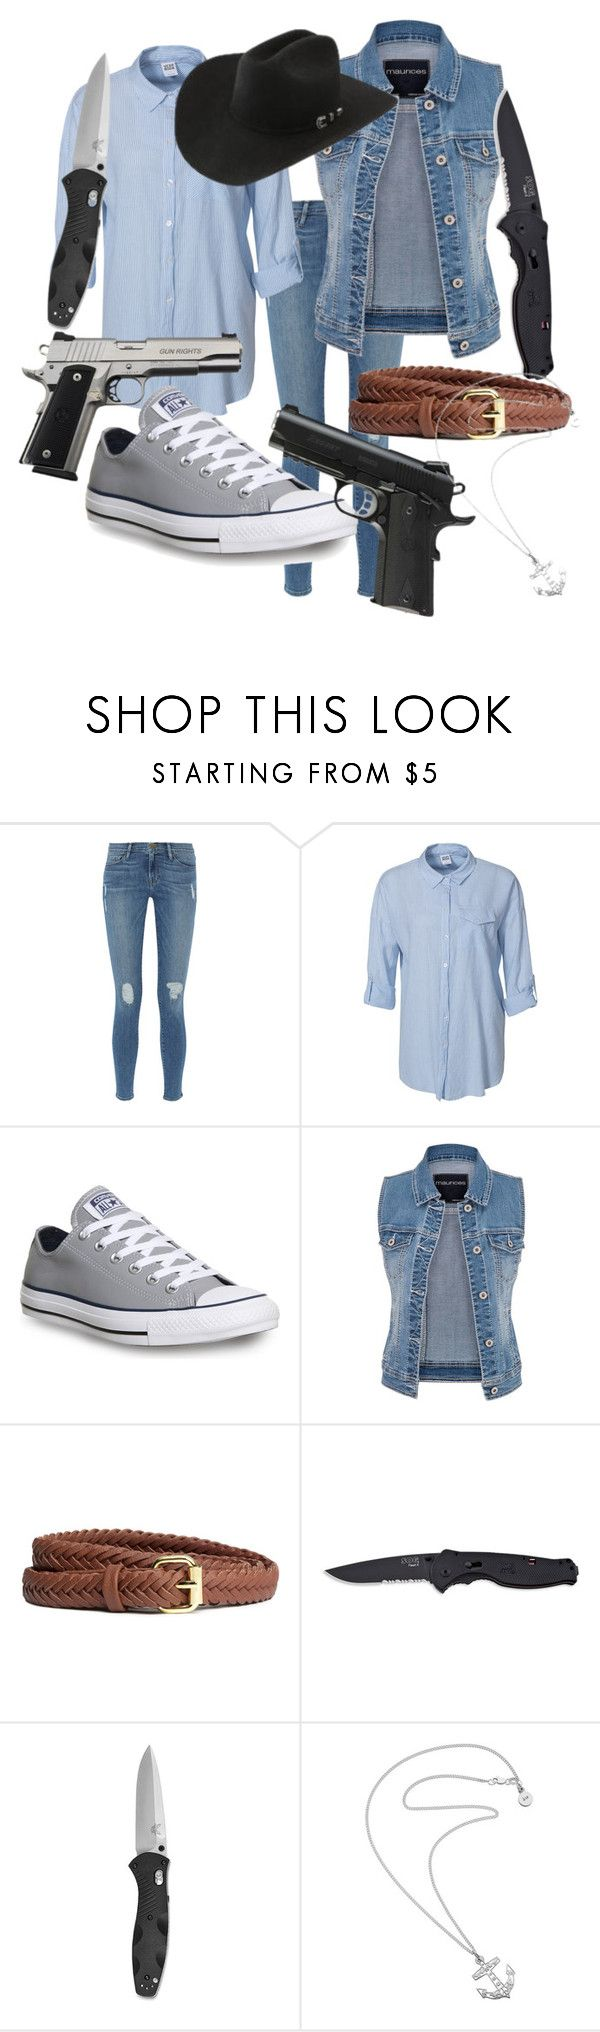 """""""Evan Rhee *The Walking Dead Fanfiction Outfit 004*"""" by lauren-mossgotheridge ❤ liked on Polyvore featuring Frame, Vero Moda, Converse, maurices, H&M, Caliber, Handle and Karen Walker"""